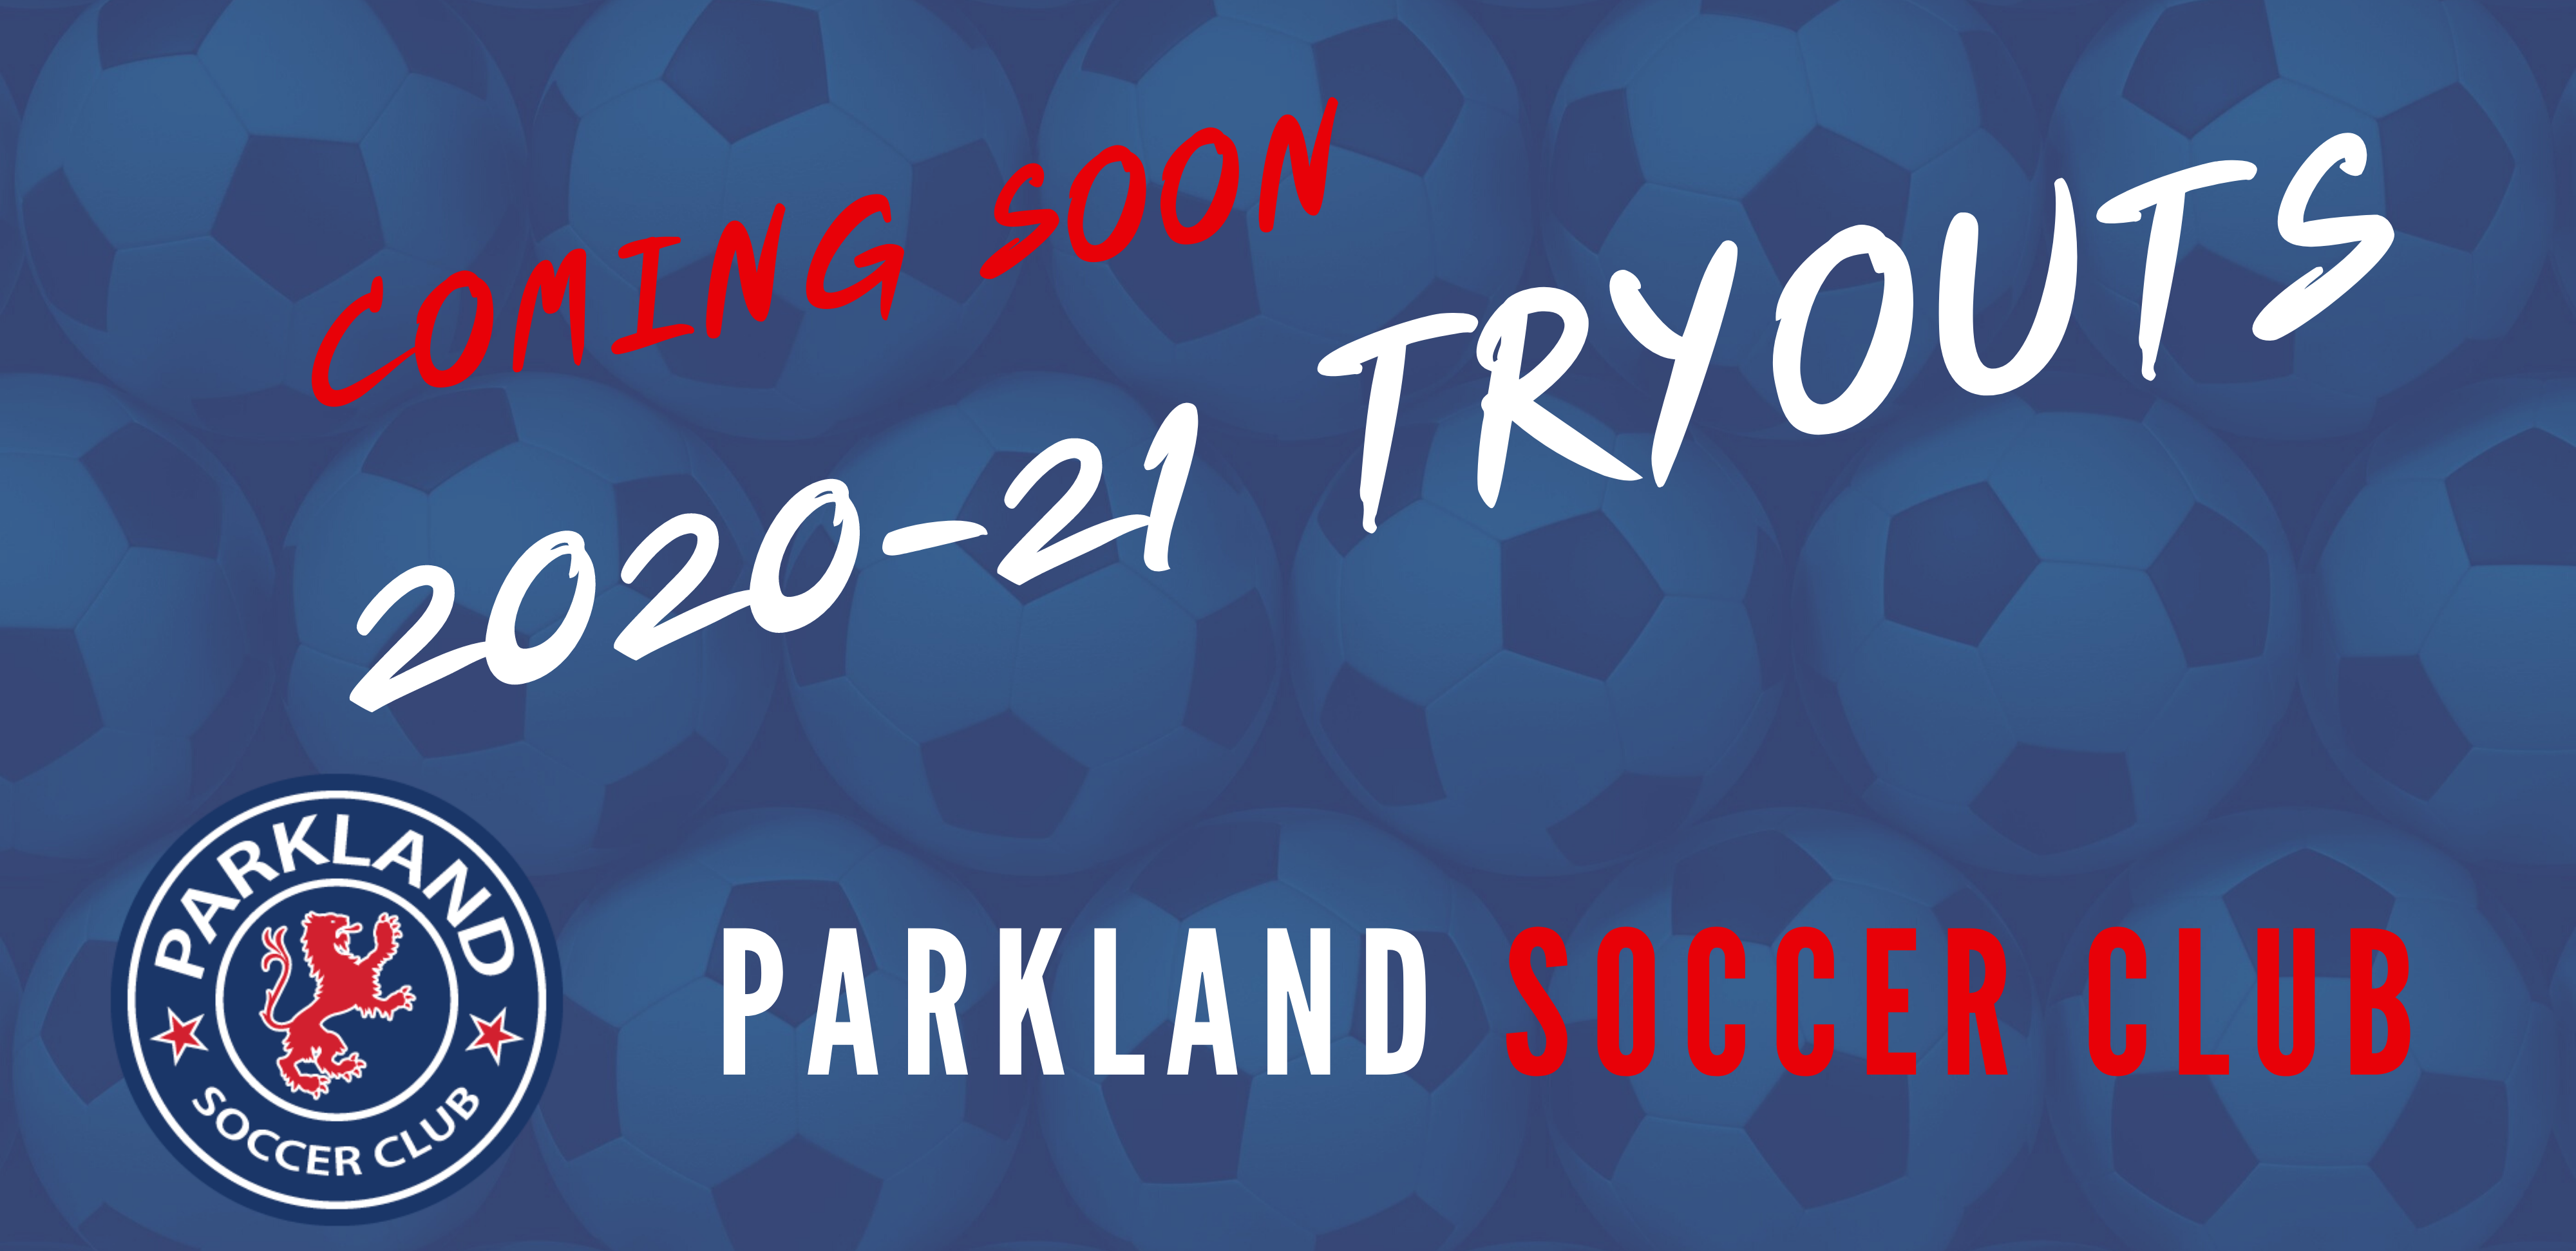 Due to the current global coronavirus pandemic, 2020-2021 PSC Tryouts have been postponed.